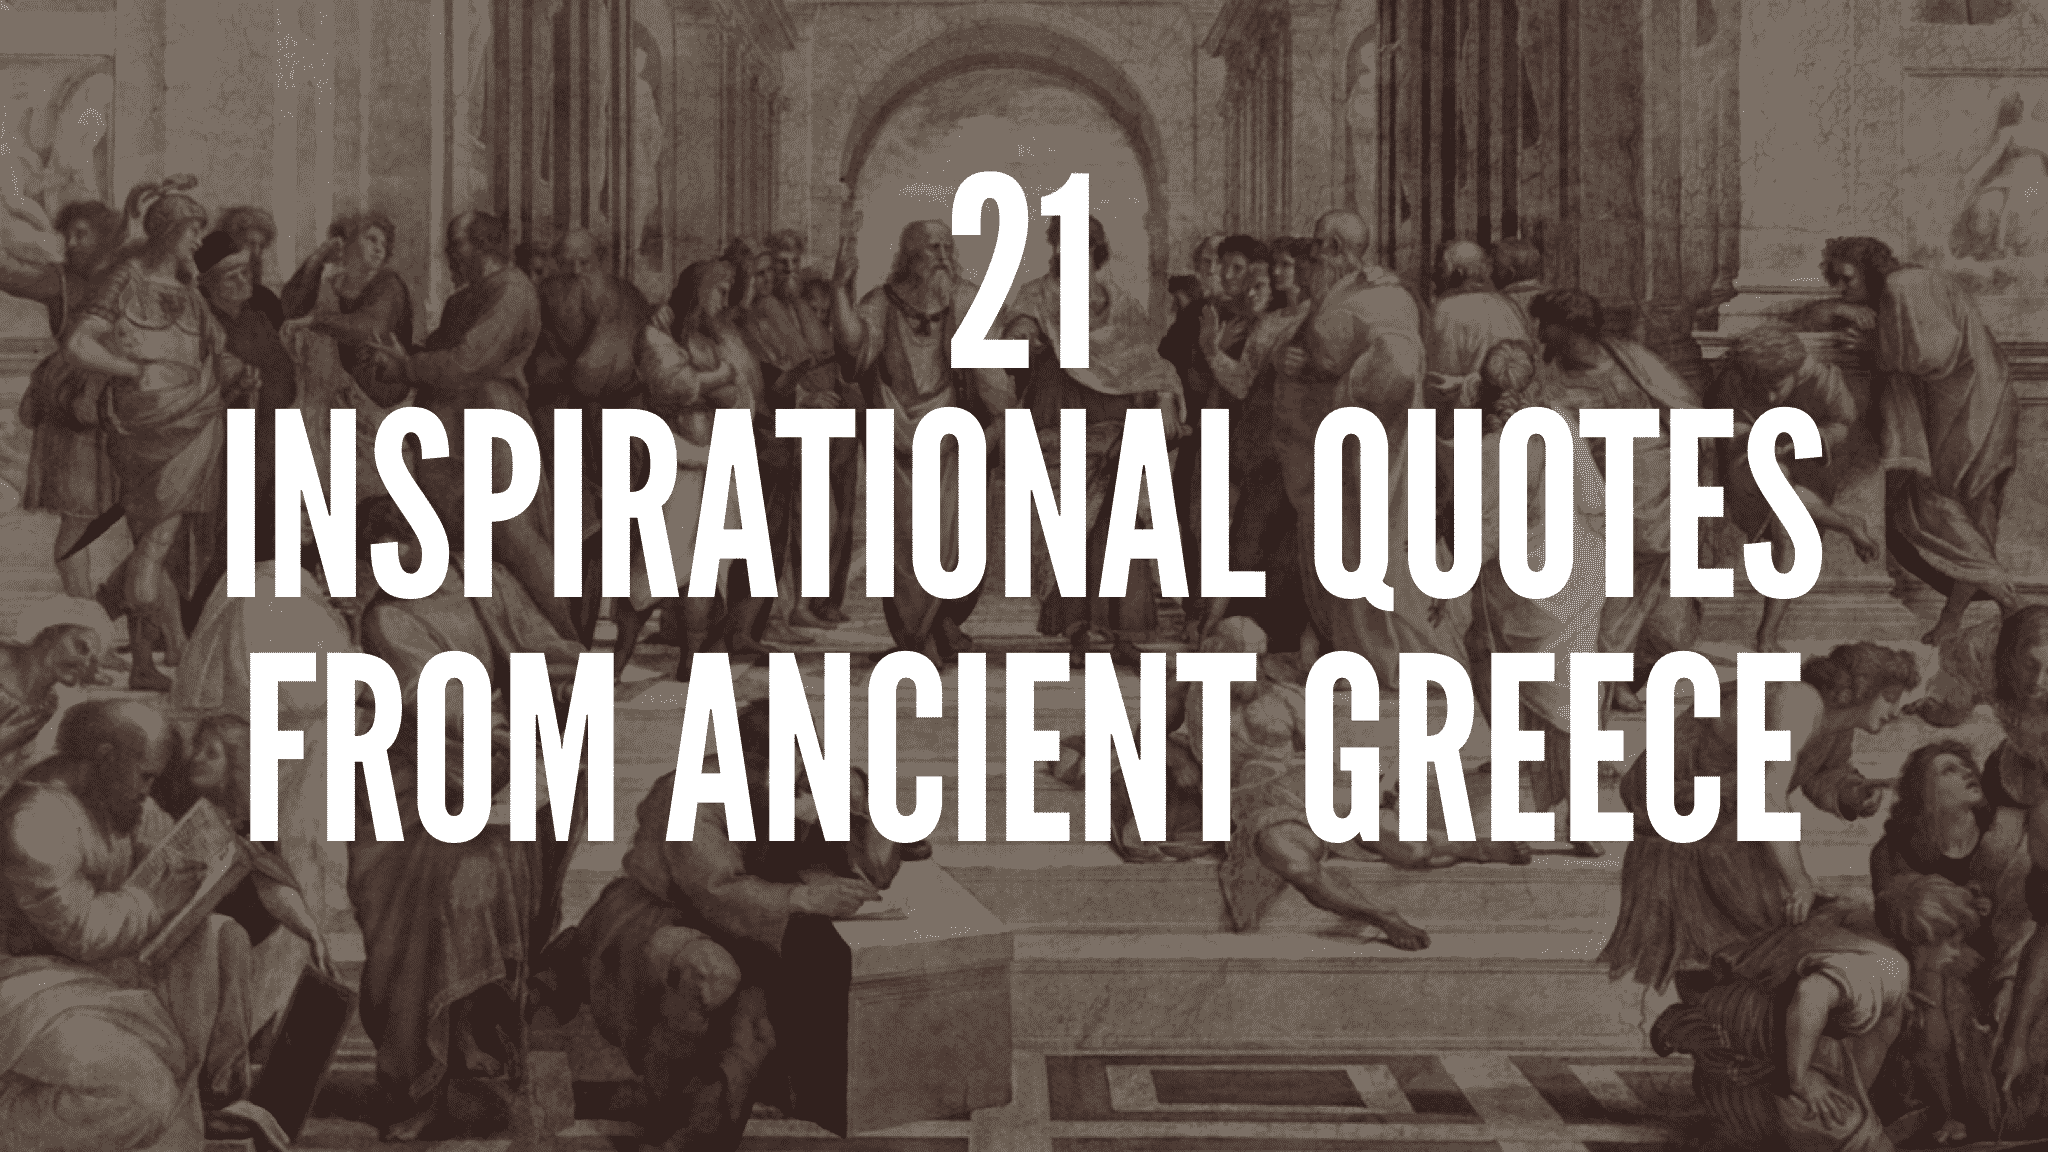 21 Inspirational Quotes From Ancient Greece